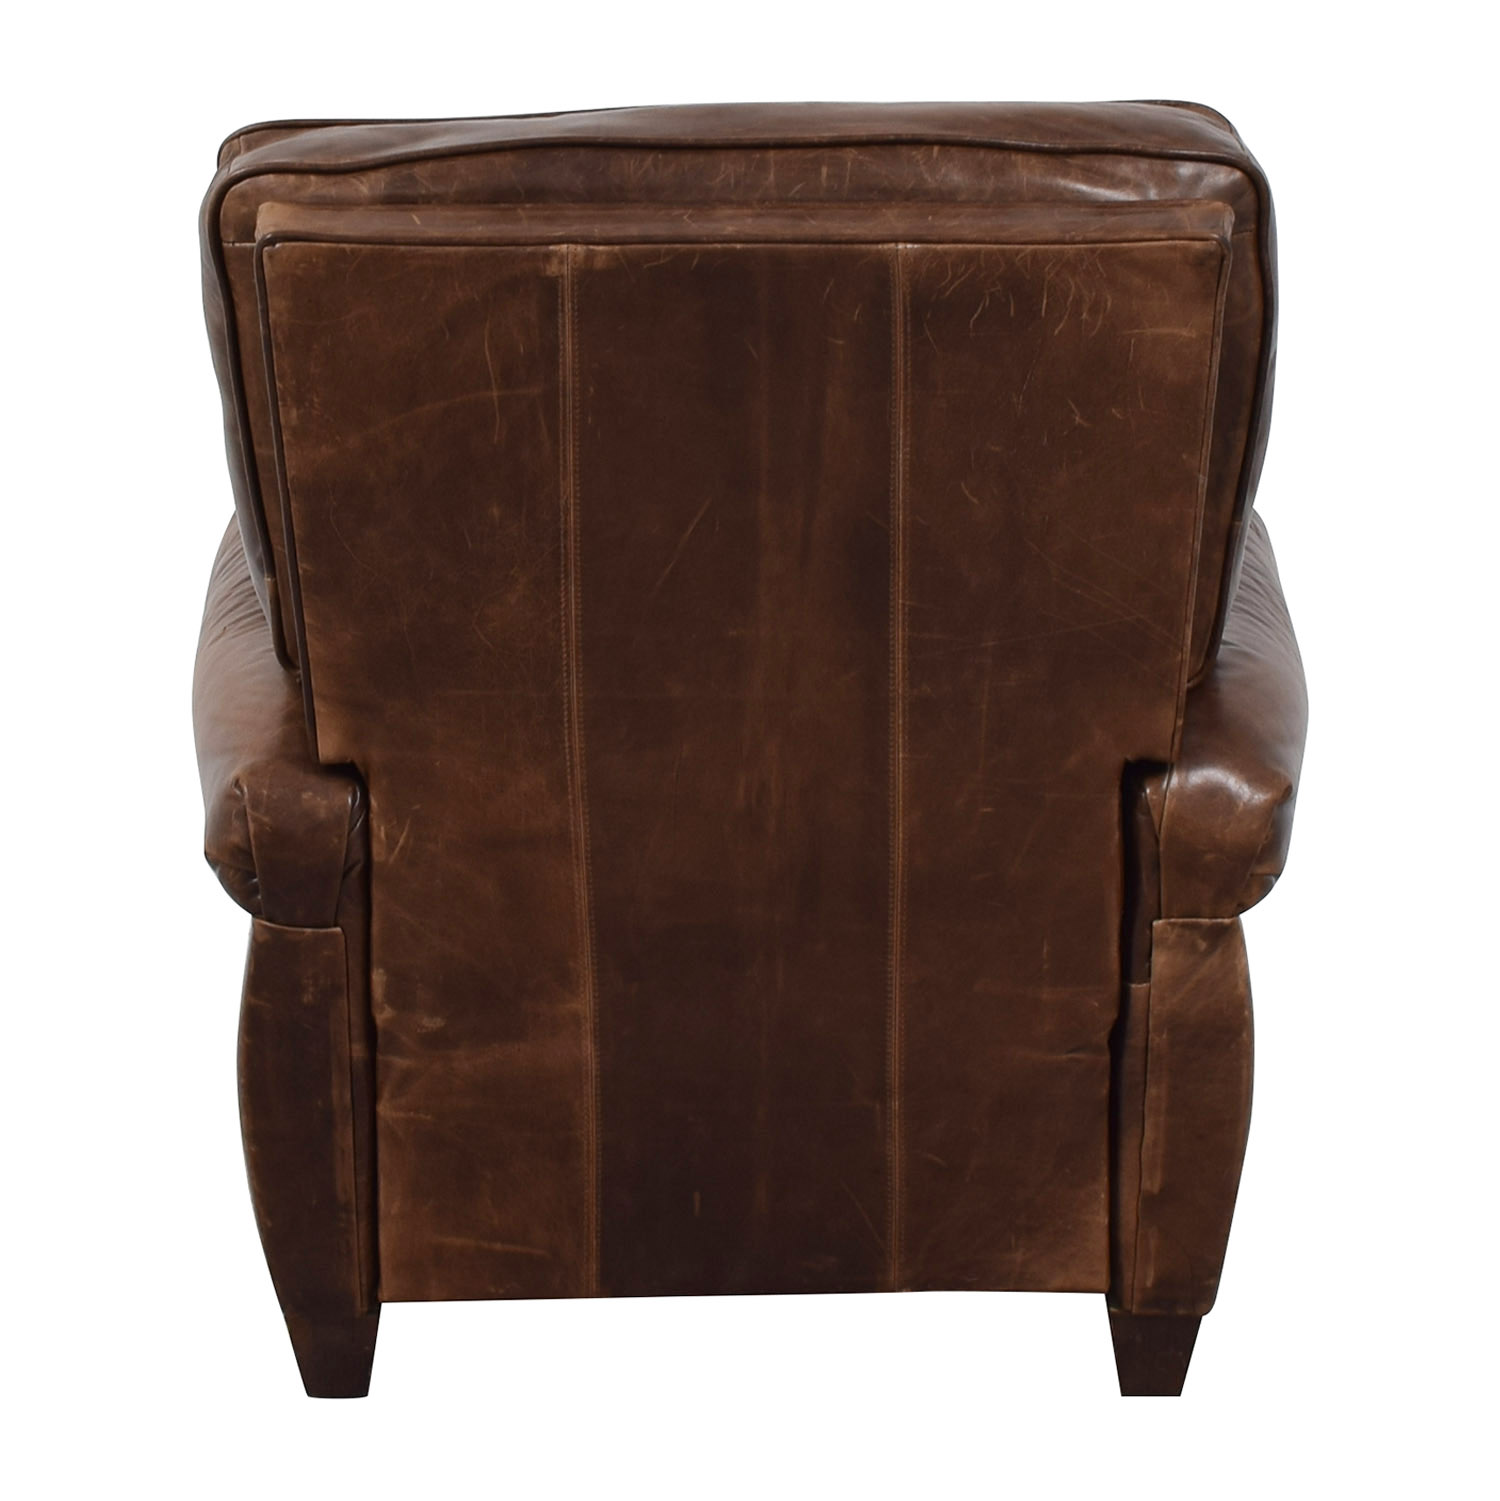 shop Pottery Barn Brown Leather Recliner Pottery Barn